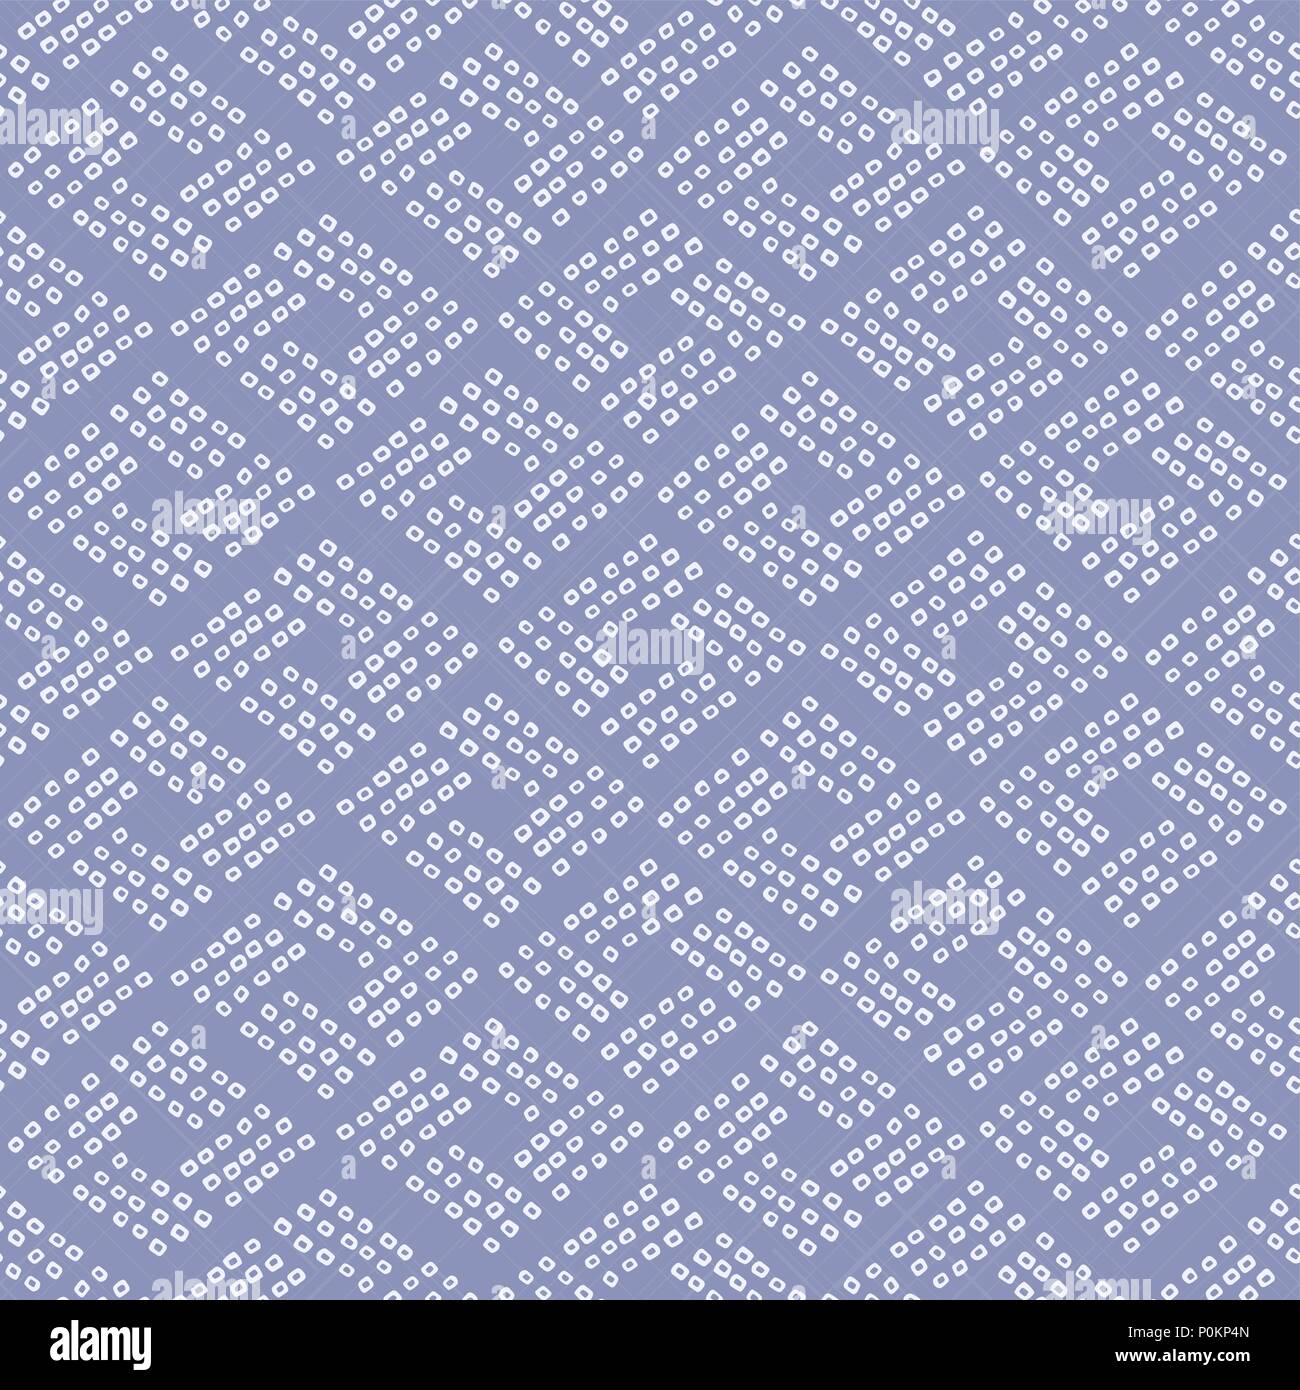 Seamless pattern  Rhombs  Japanese Shibori ornament  Asian